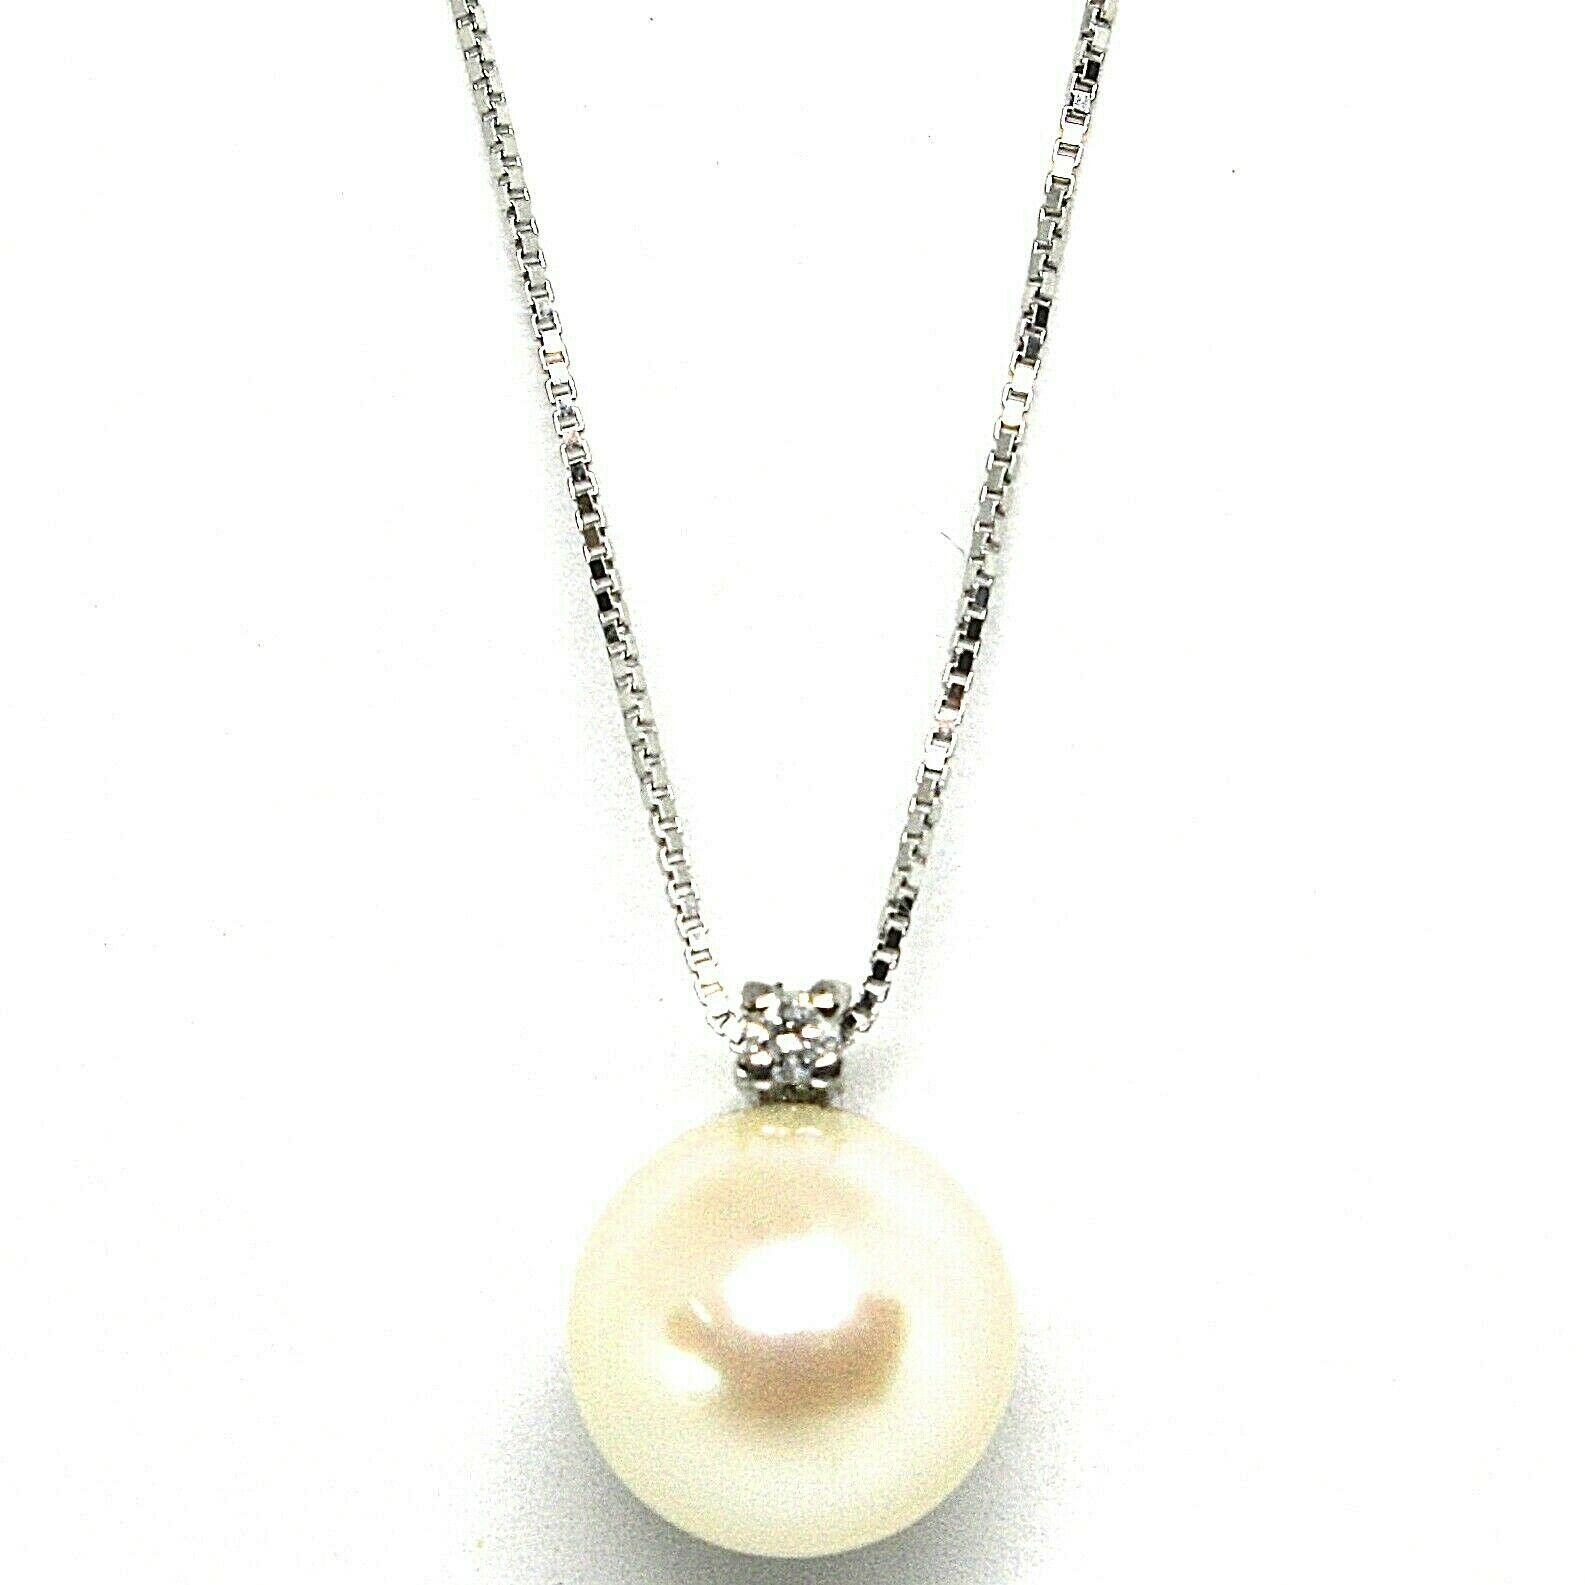 18K WHITE GOLD NECKLACE AKOYA PEARL 8.5 MM AND DIAMOND, PENDANT & VENETIAN CHAIN